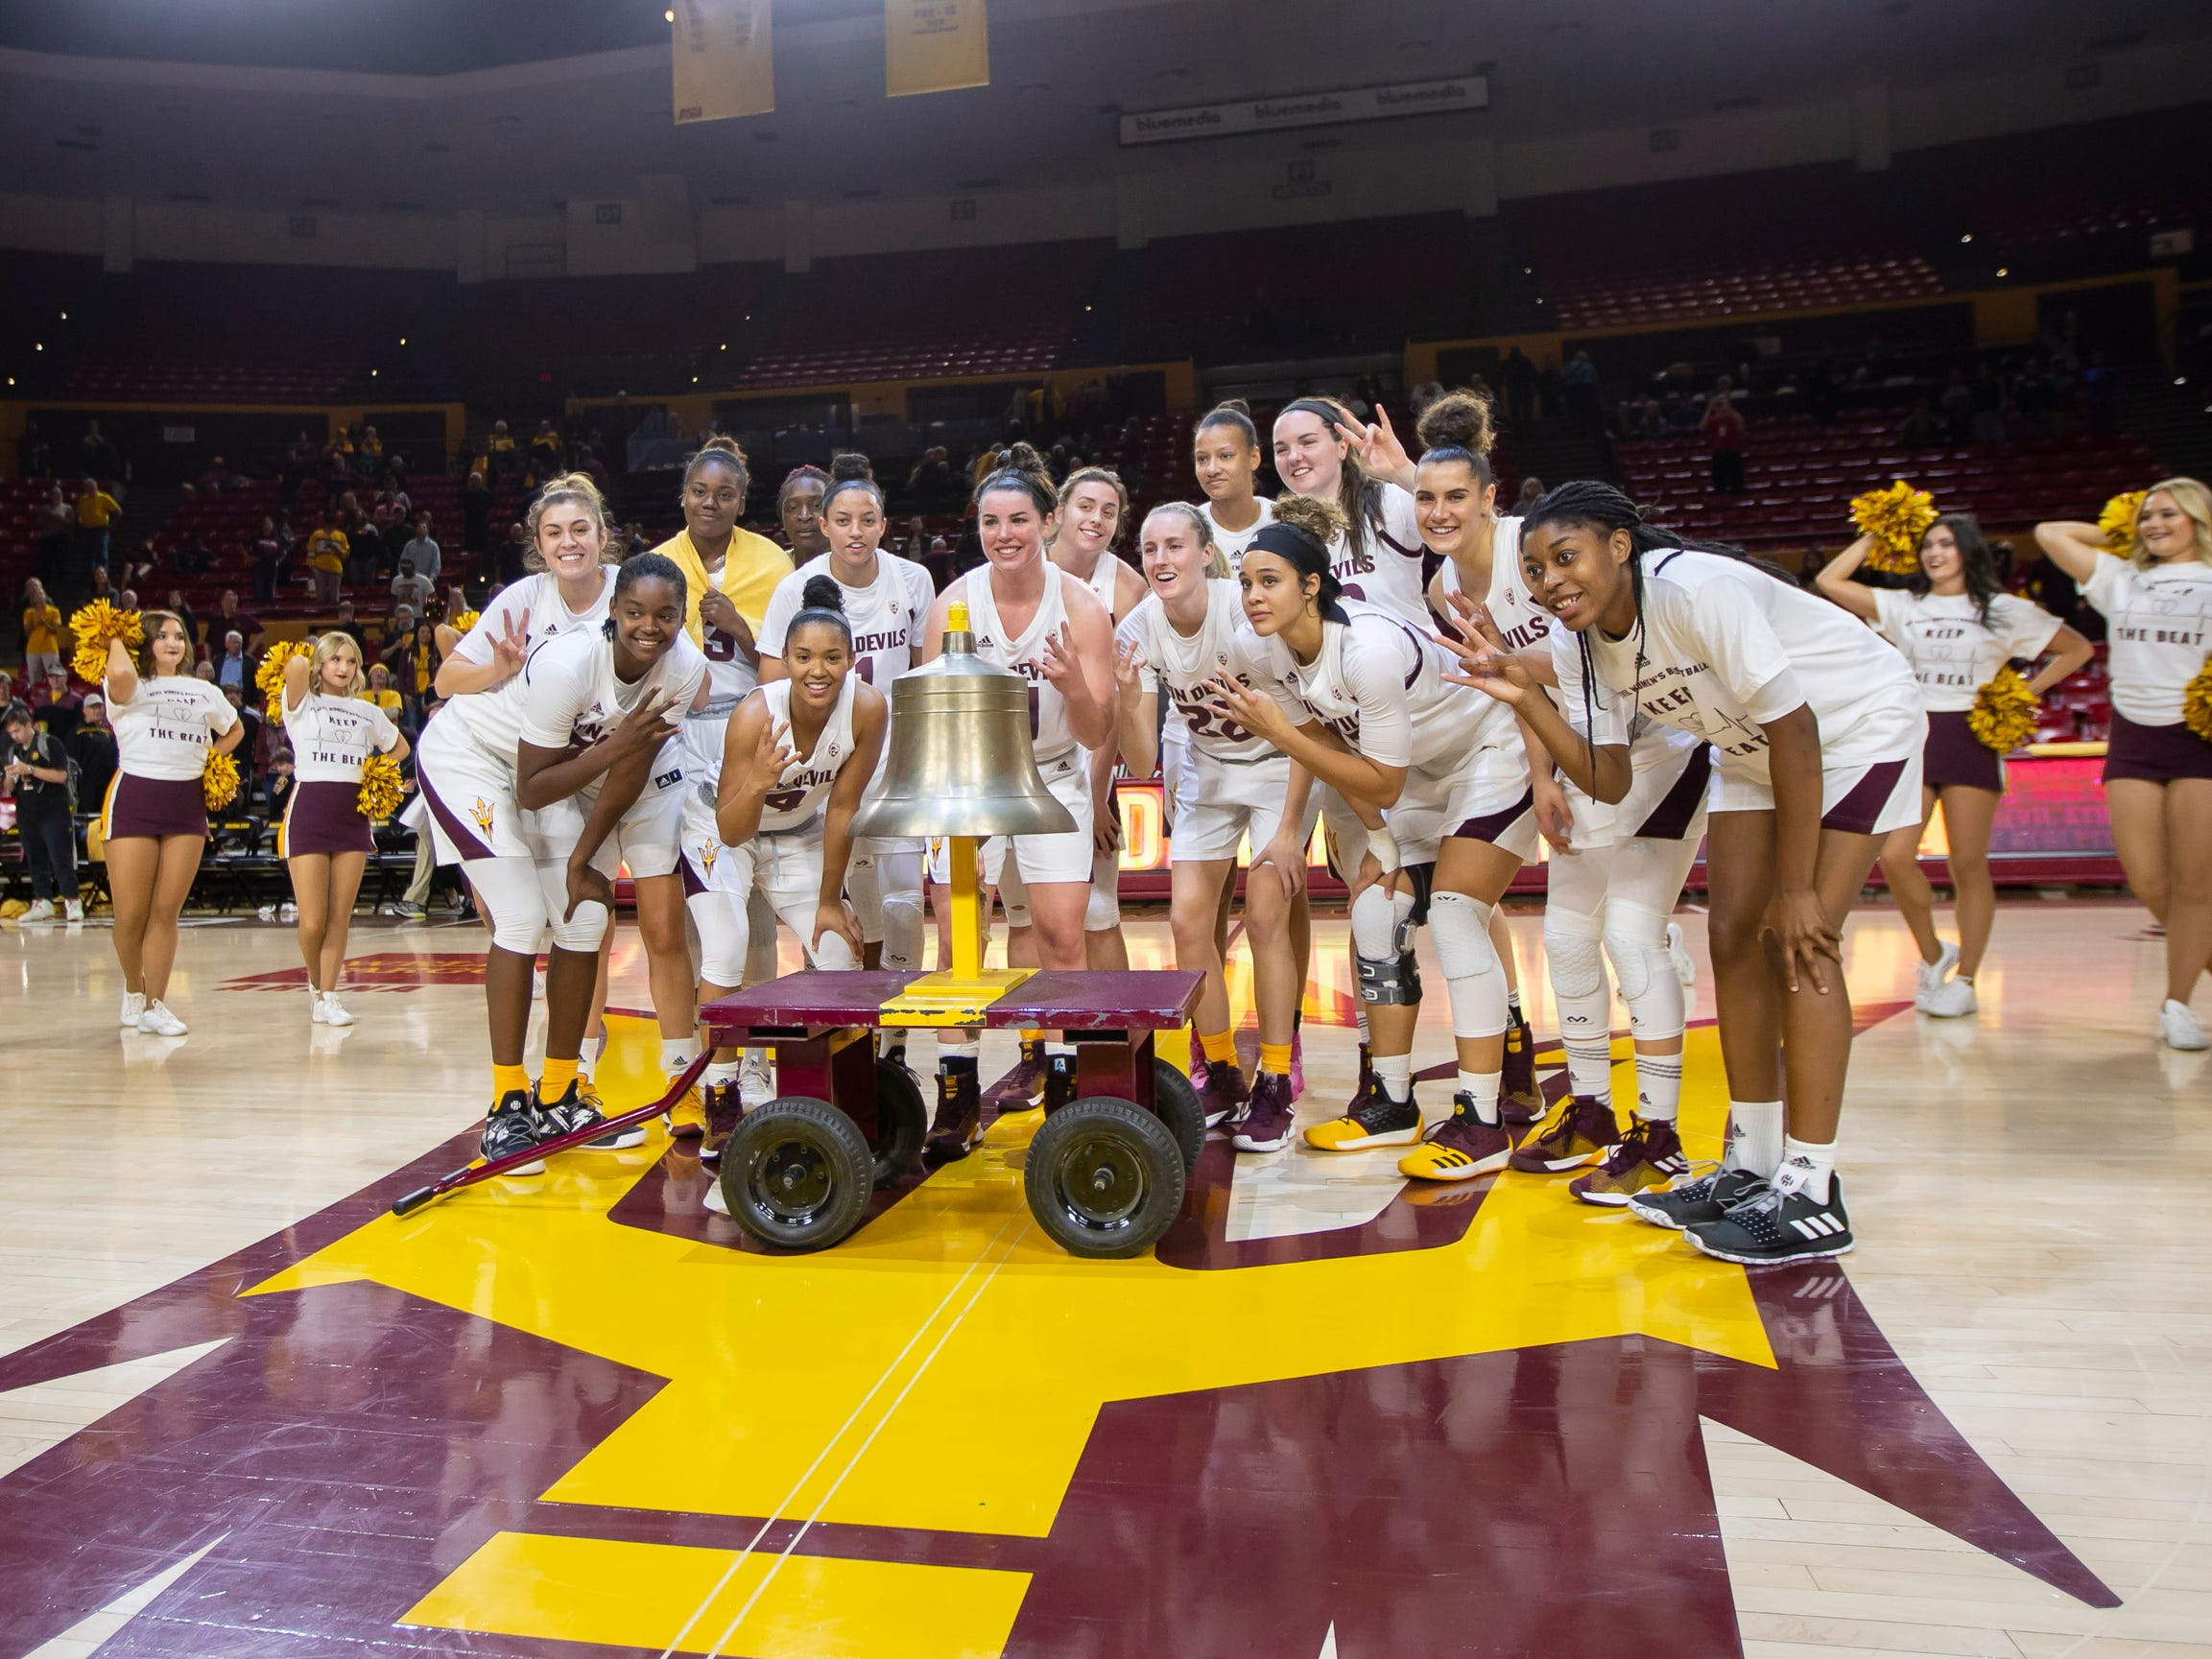 The Arizona State Sun Devils following their win against Tulsa Golden Hurricane at Wells Fargo Arena on Sunday, December 2, 2018 in Tempe, Arizona.